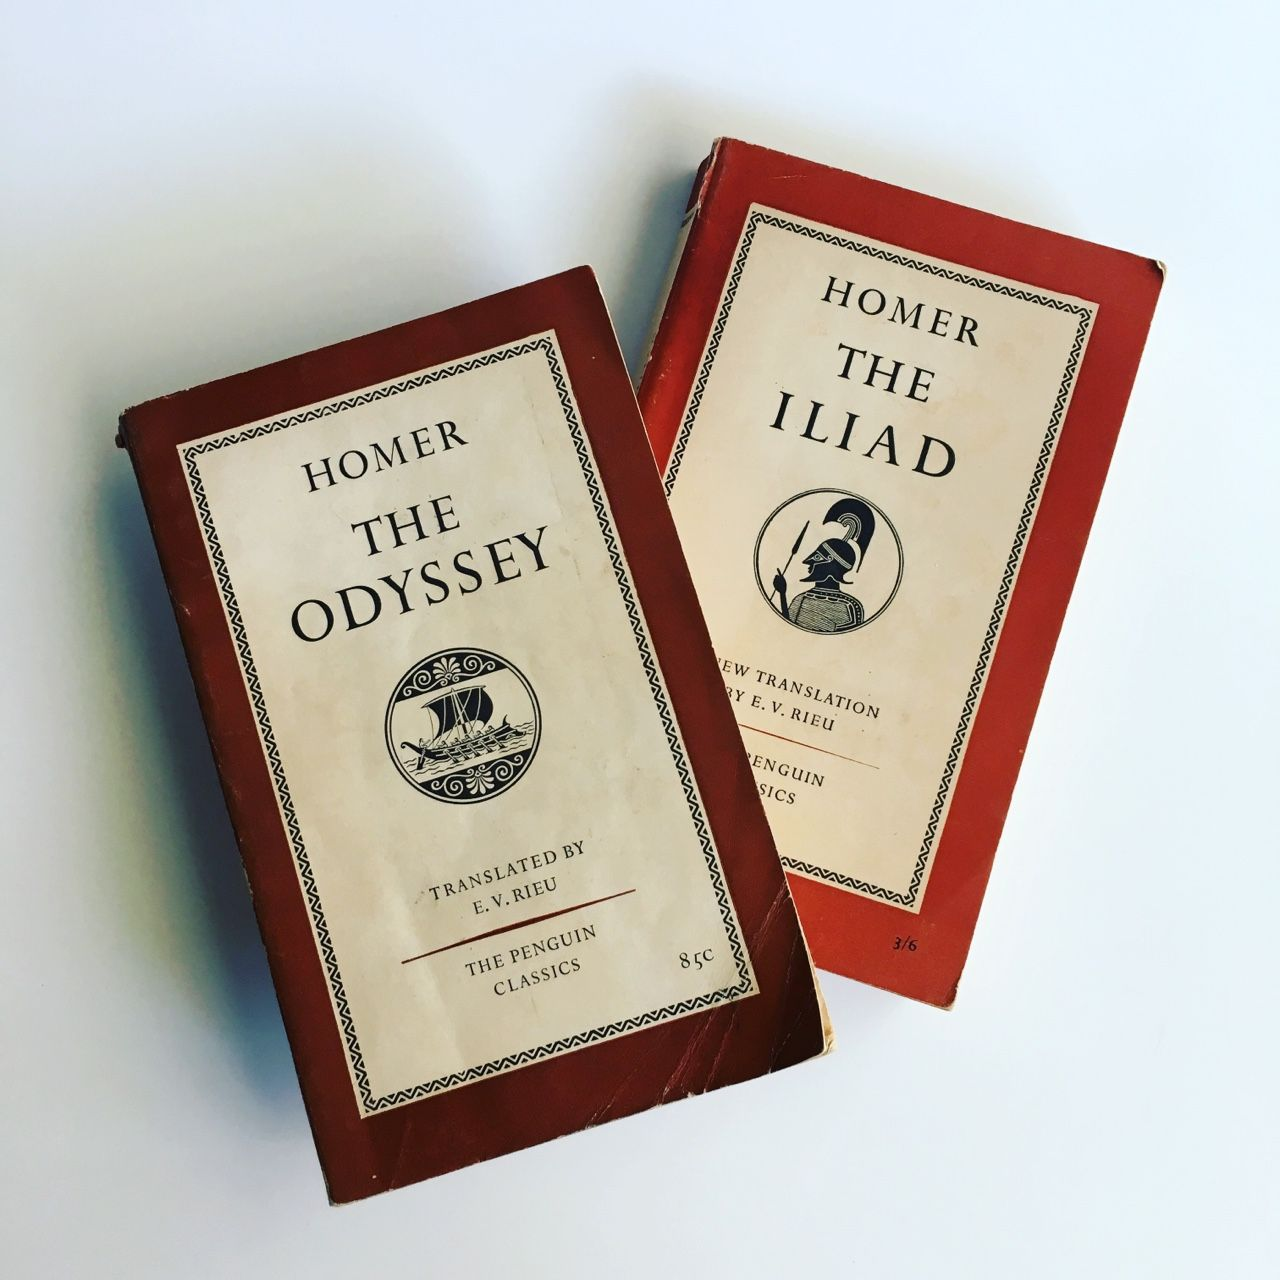 The Iliad And The Odyssey Homer Are The Two Oldest